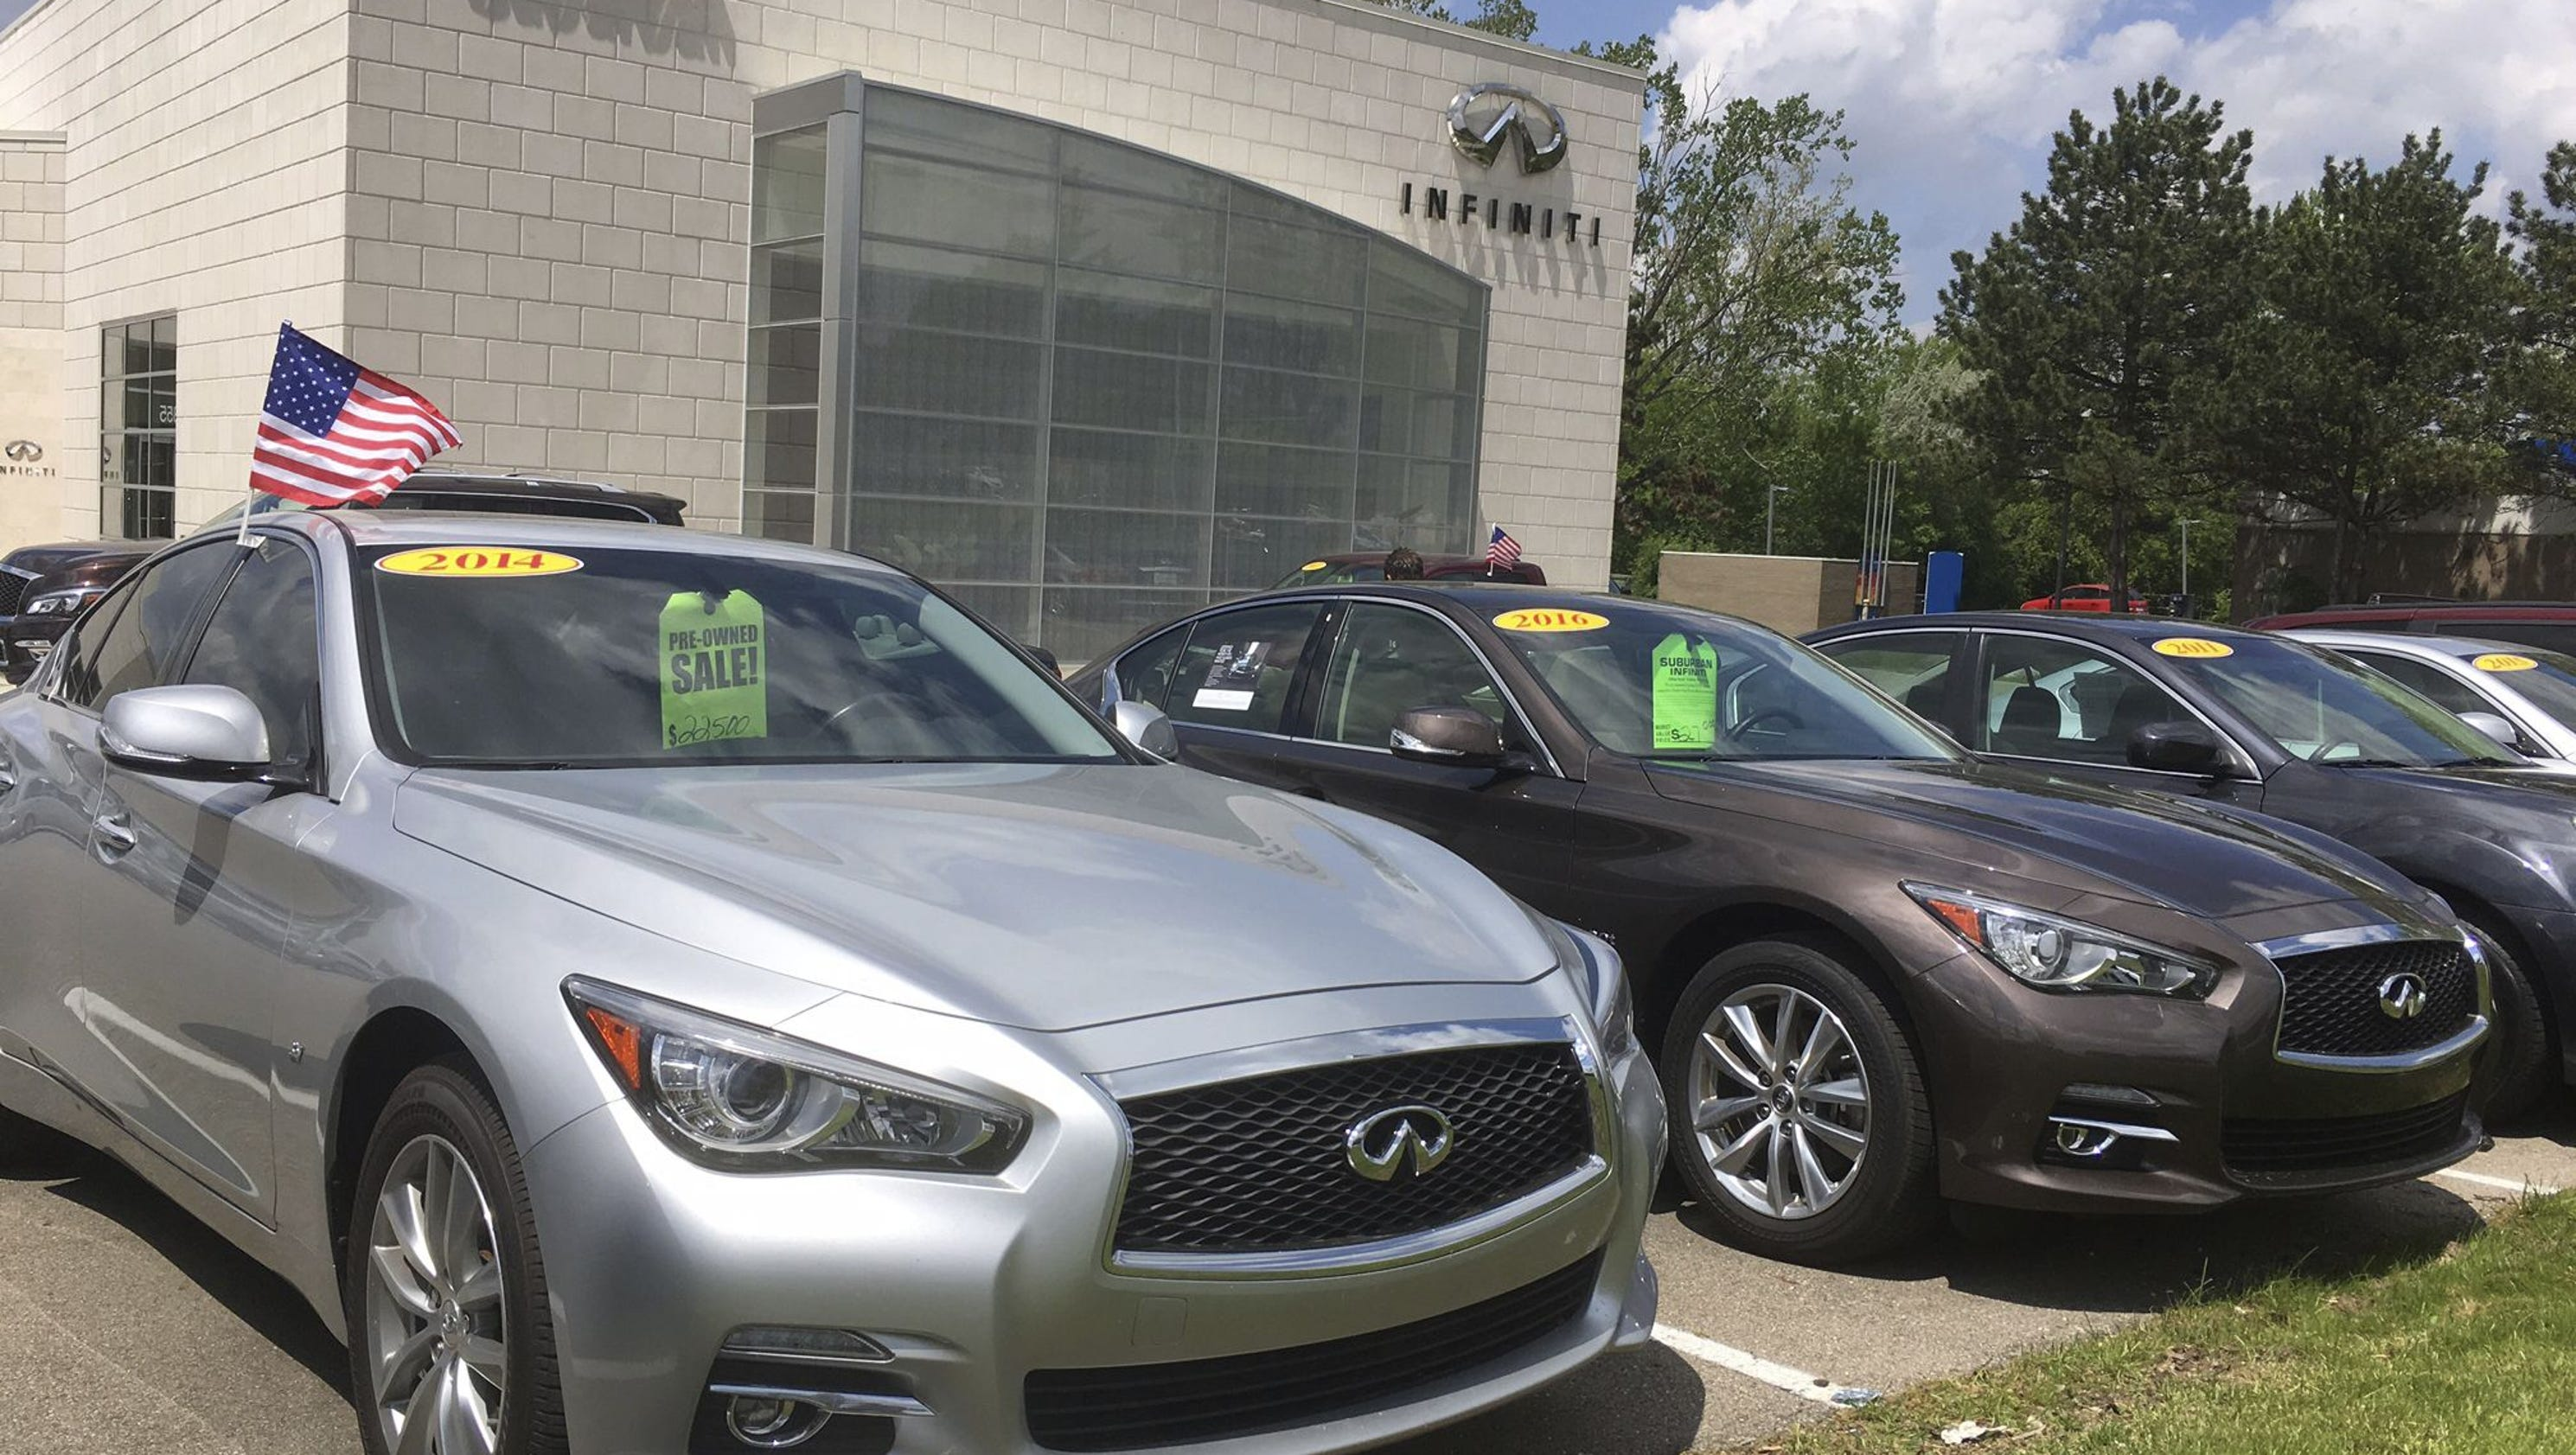 f lease used cars are flooding market pushing prices down